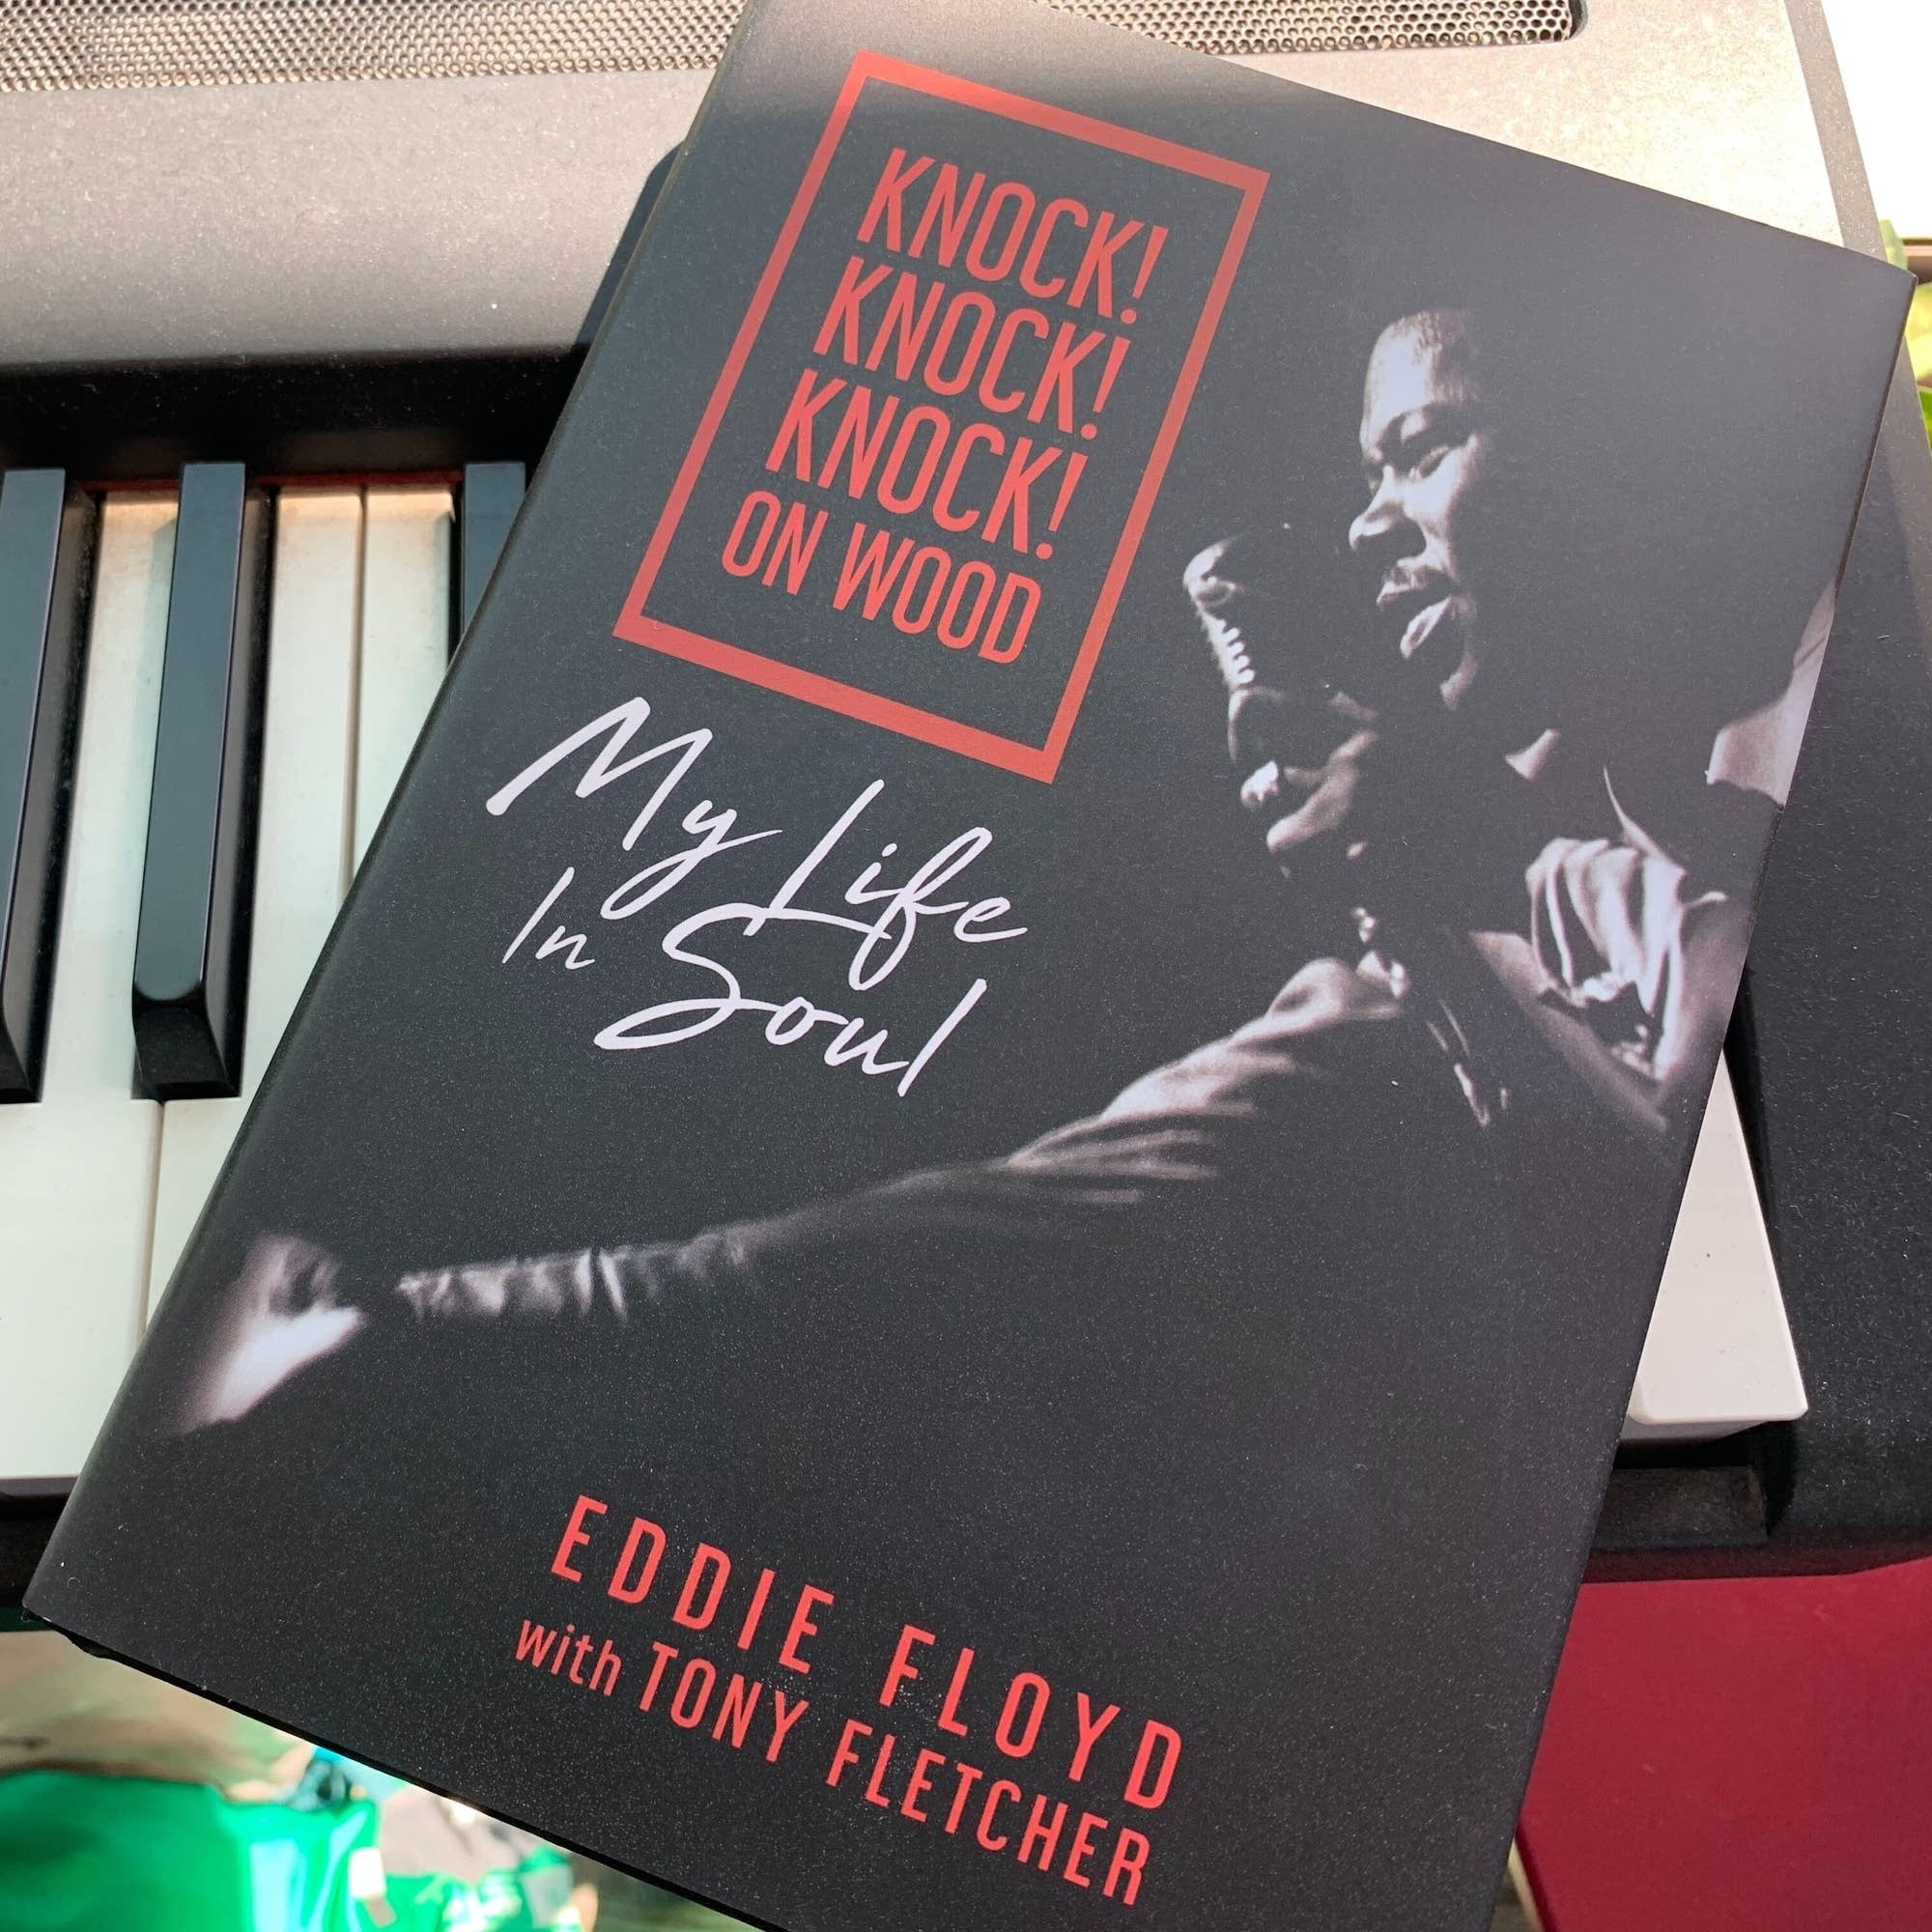 Eddie Floyd's autobiography 'Knock! Knock! Knock! on Wood.'